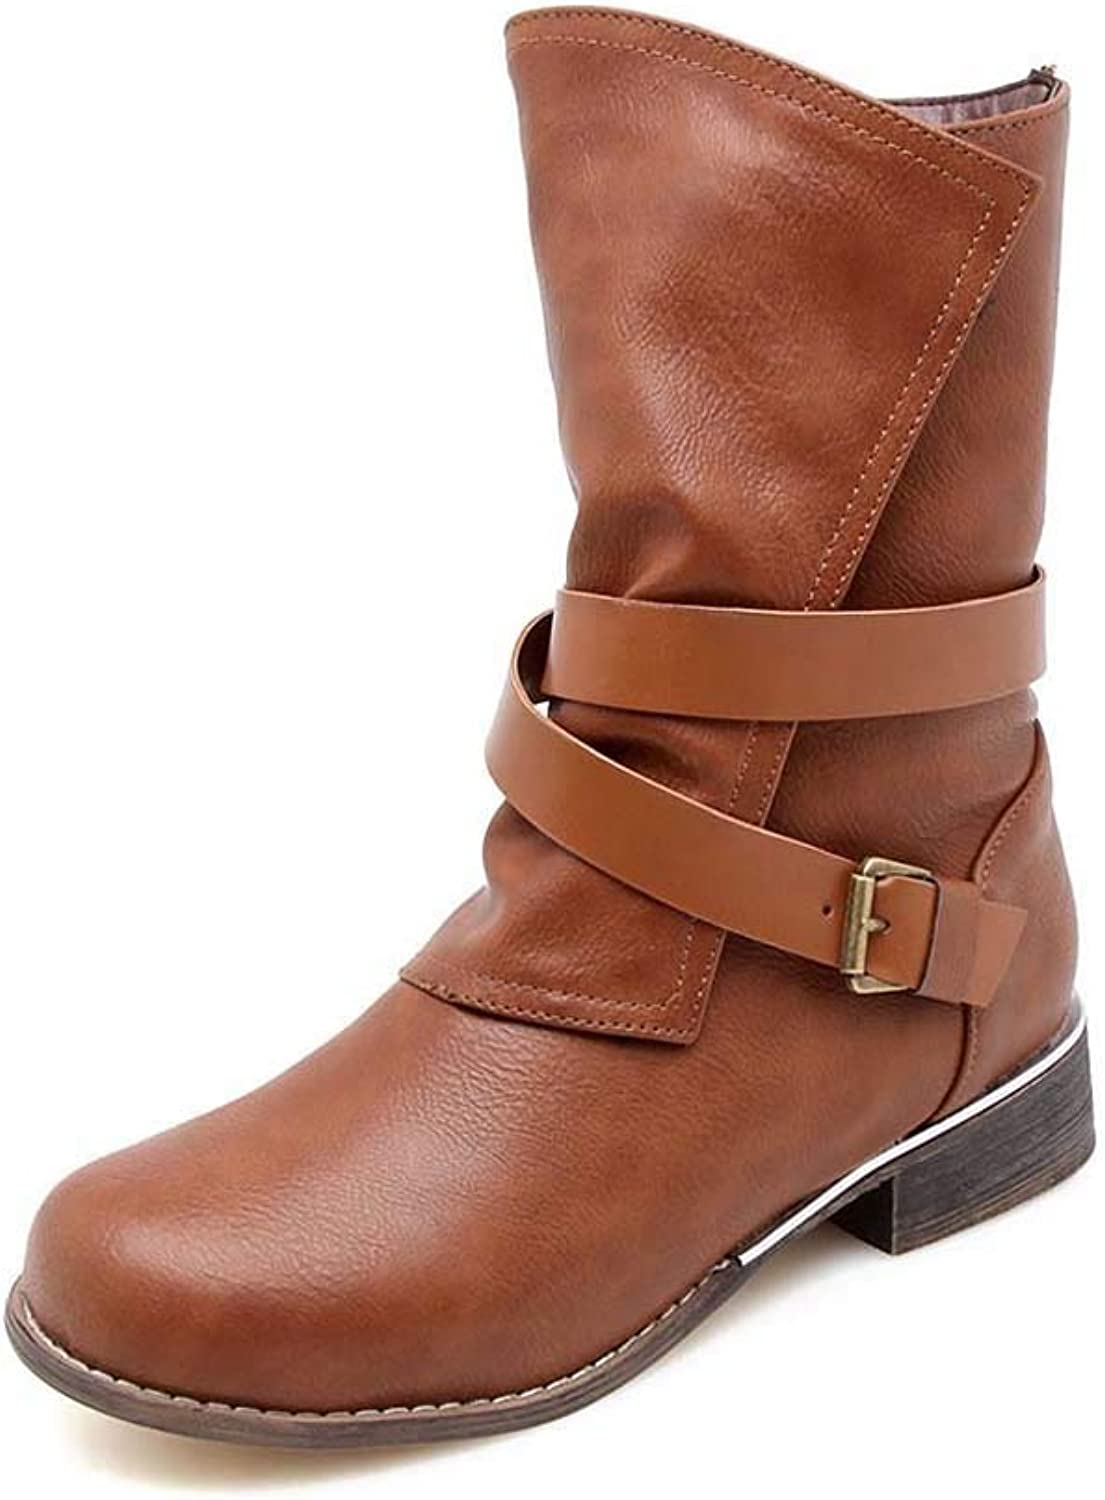 Women's Boots, Versatile Casual Low Heel Square with Large Size 34-43 Belt Buckle in The Tube Women's Boots